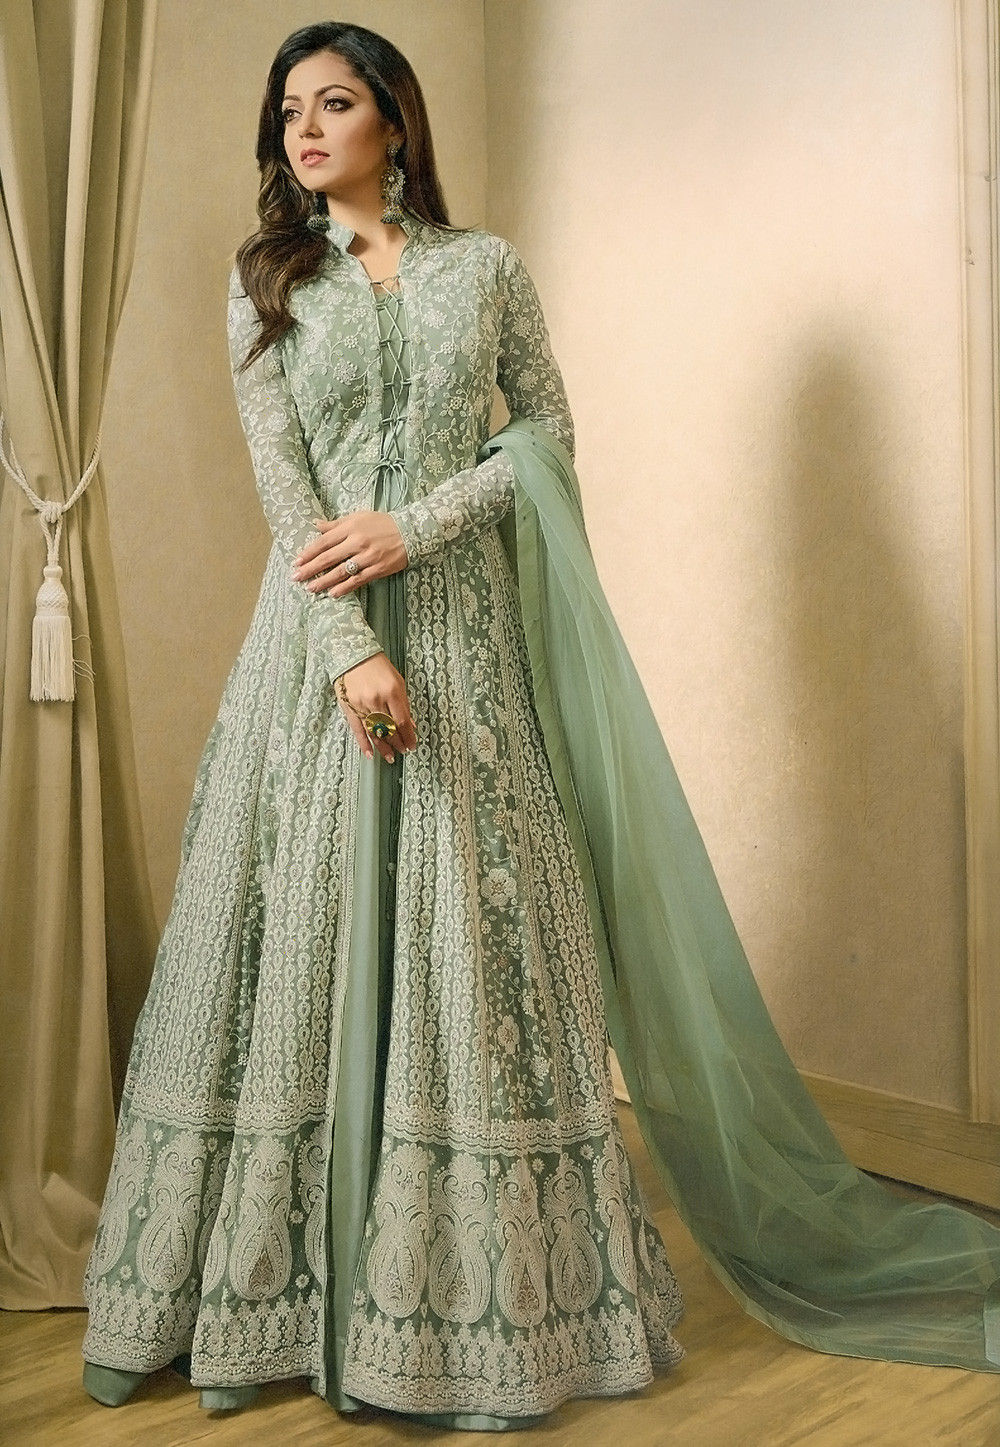 a53d01d9551 Embroidered Net Abaya Style Suit in Pastel Green   KCH1293